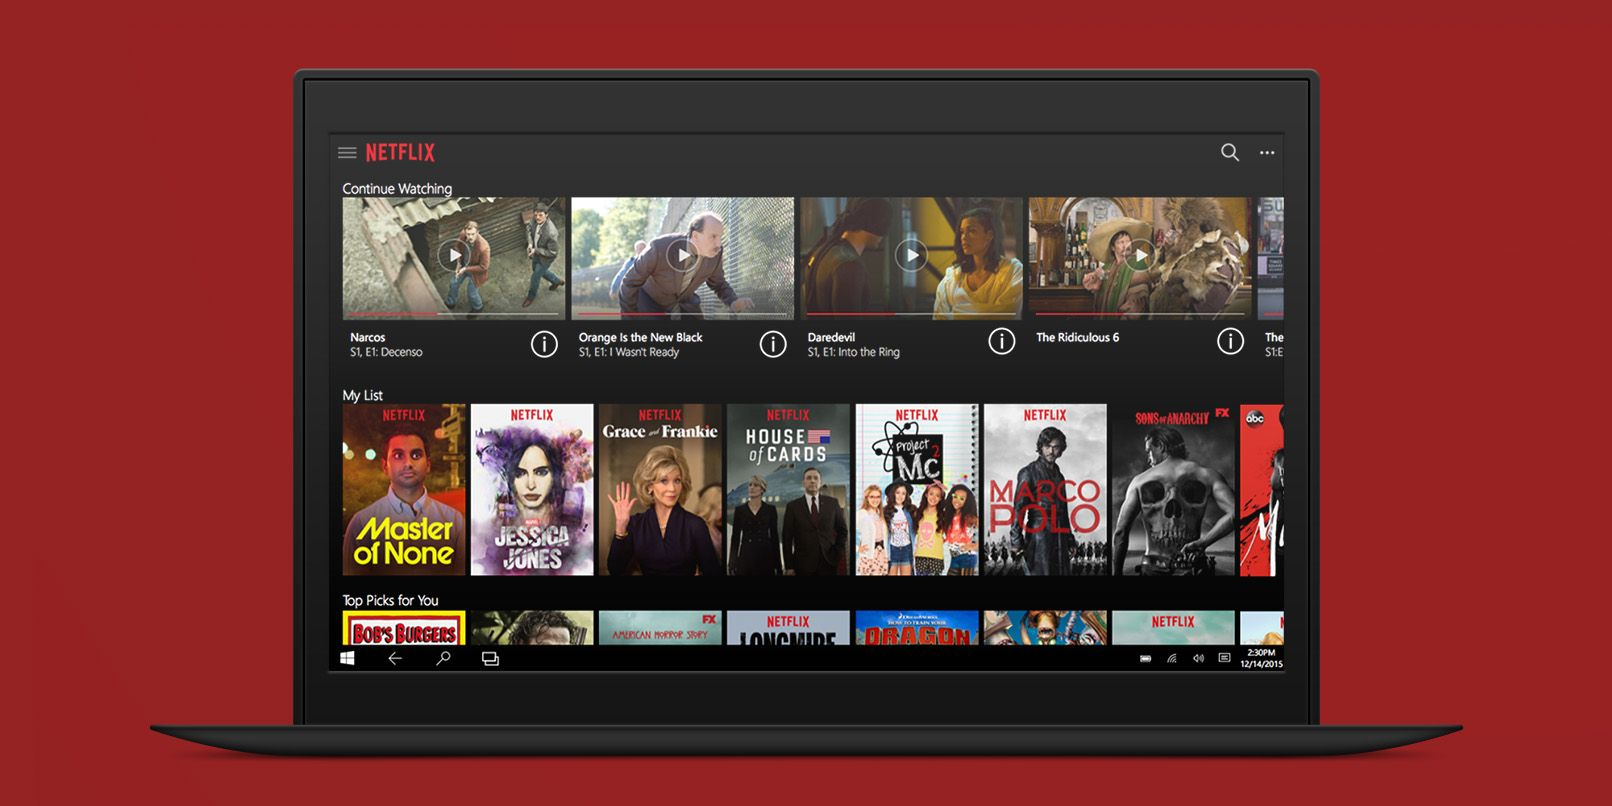 Netflix secret categories here's how to access and find